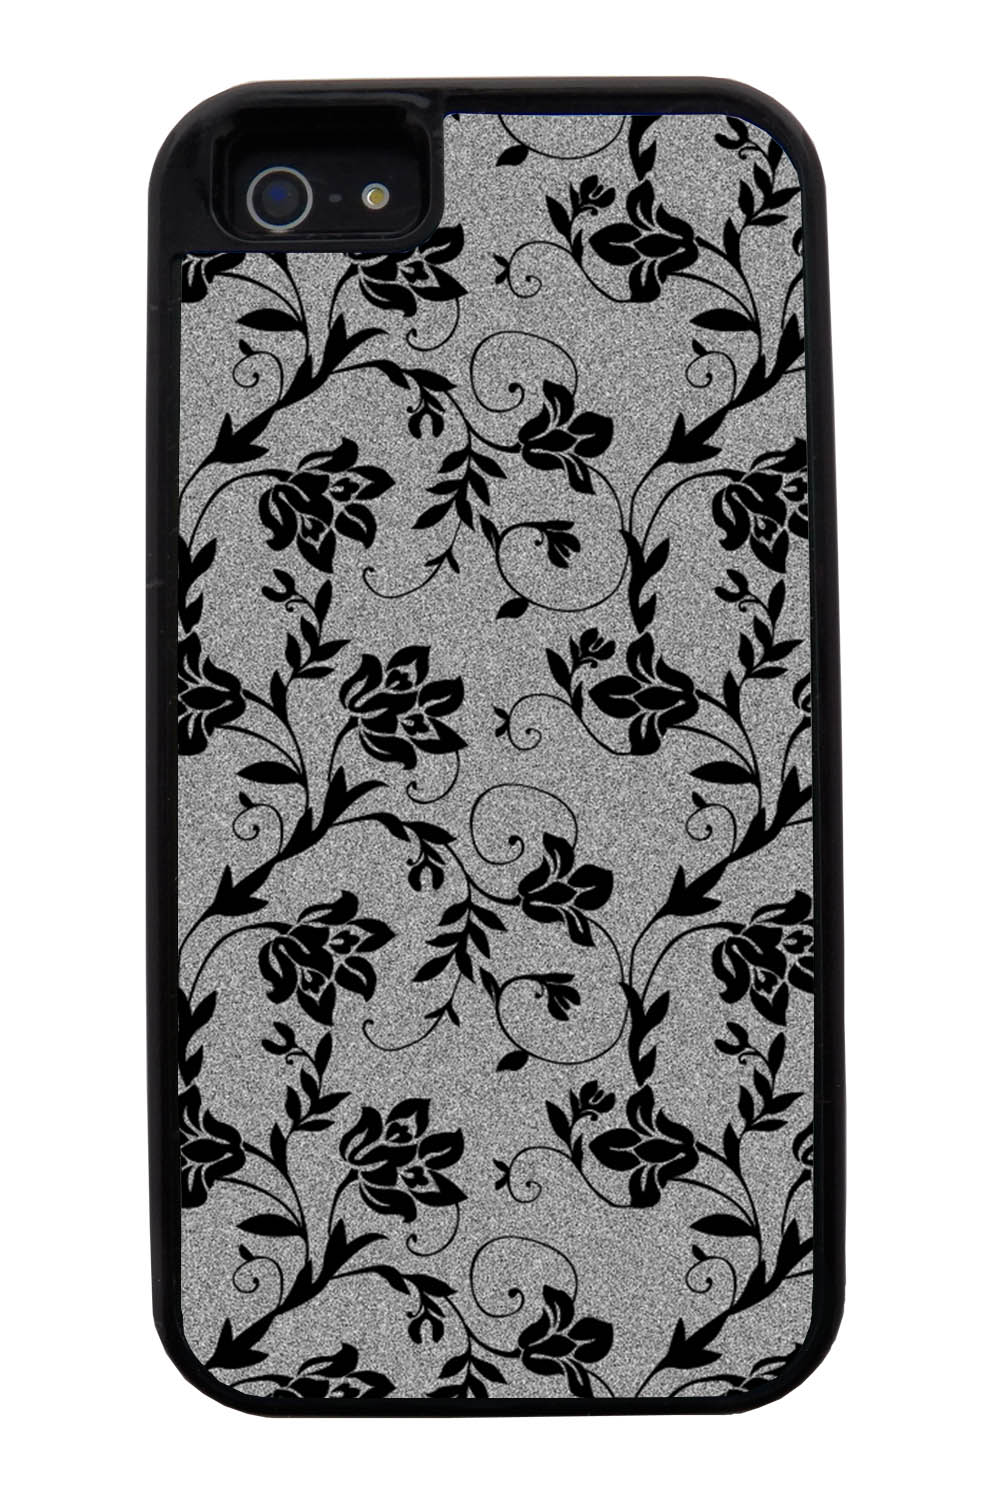 Apple iPhone 5 / 5S Flower Case - Black on Textured Grey - Stencil Cutout - Black Tough Hybrid Case